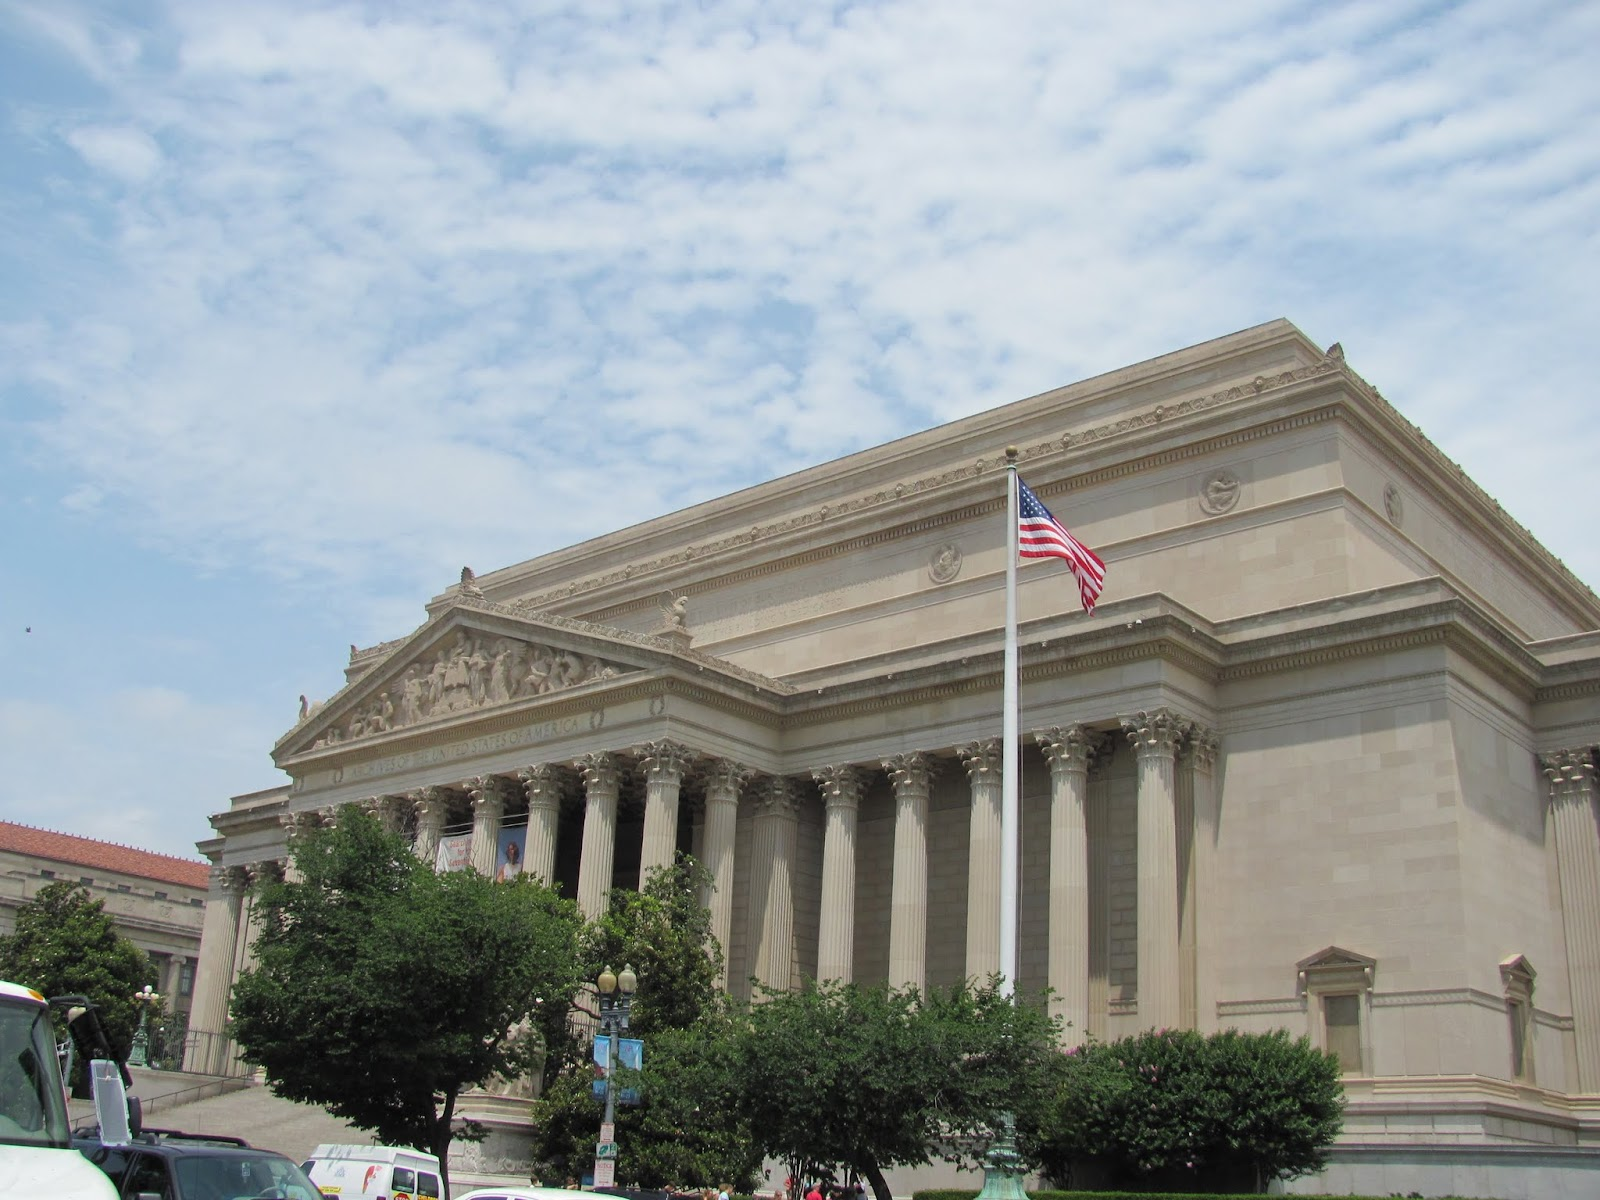 Front entrance of the National Archives in Washington, DC